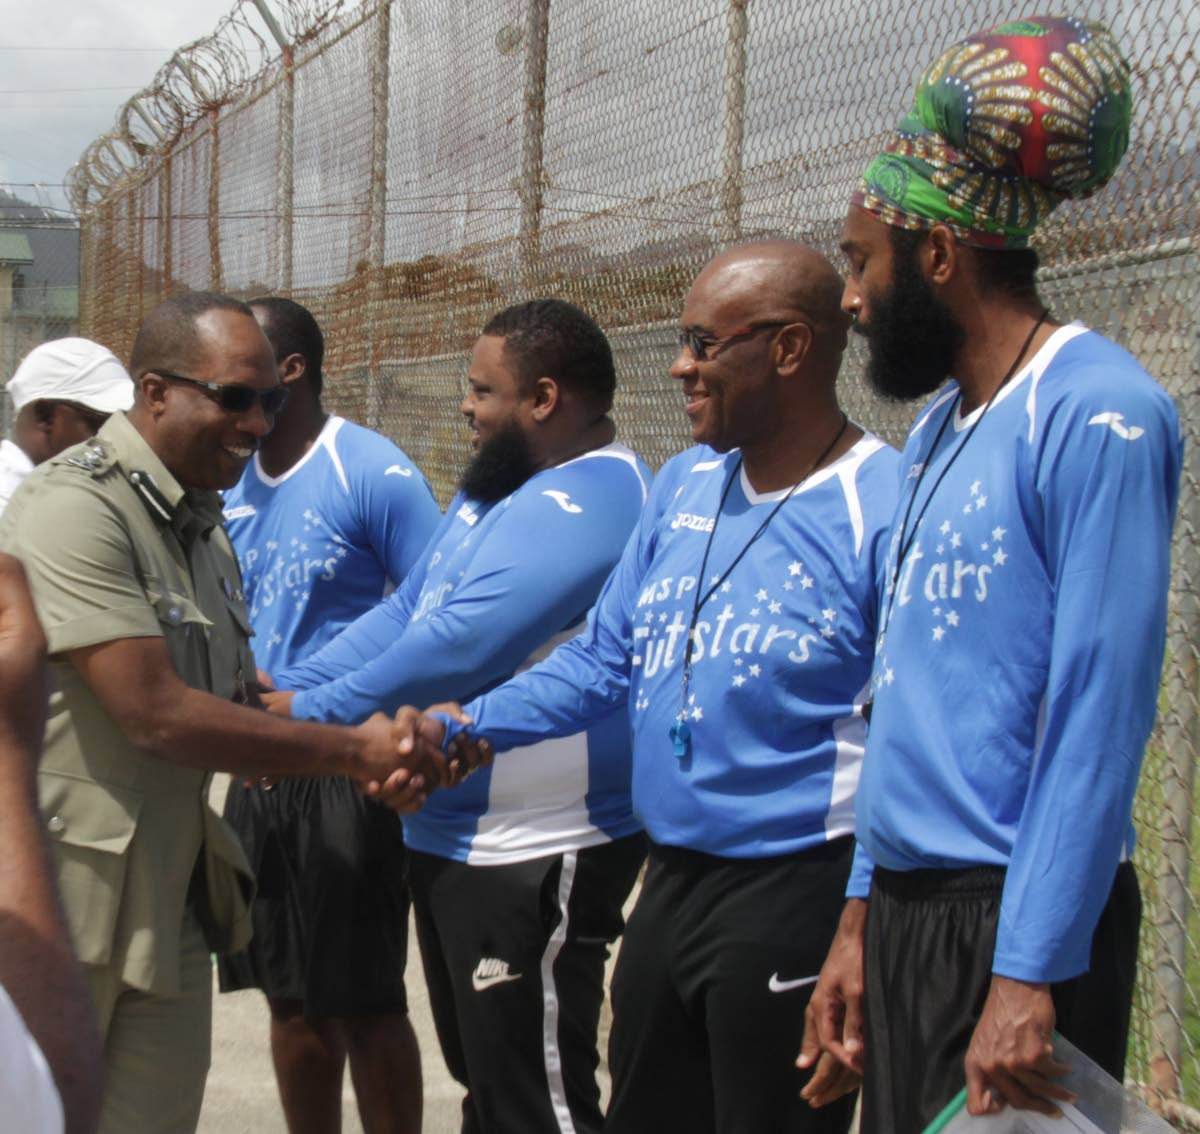 The Futsal programmes is one of acting  Commissioner of Prisons Gerard Wilson's favourite success stories. Above, Wilson greets members of the MSP FUTstars team, comprising of players and coaches at the introduction of the game of Futsal to inmates of the Remand Prison at Golden Grove Prison Facility, Arouca in March.